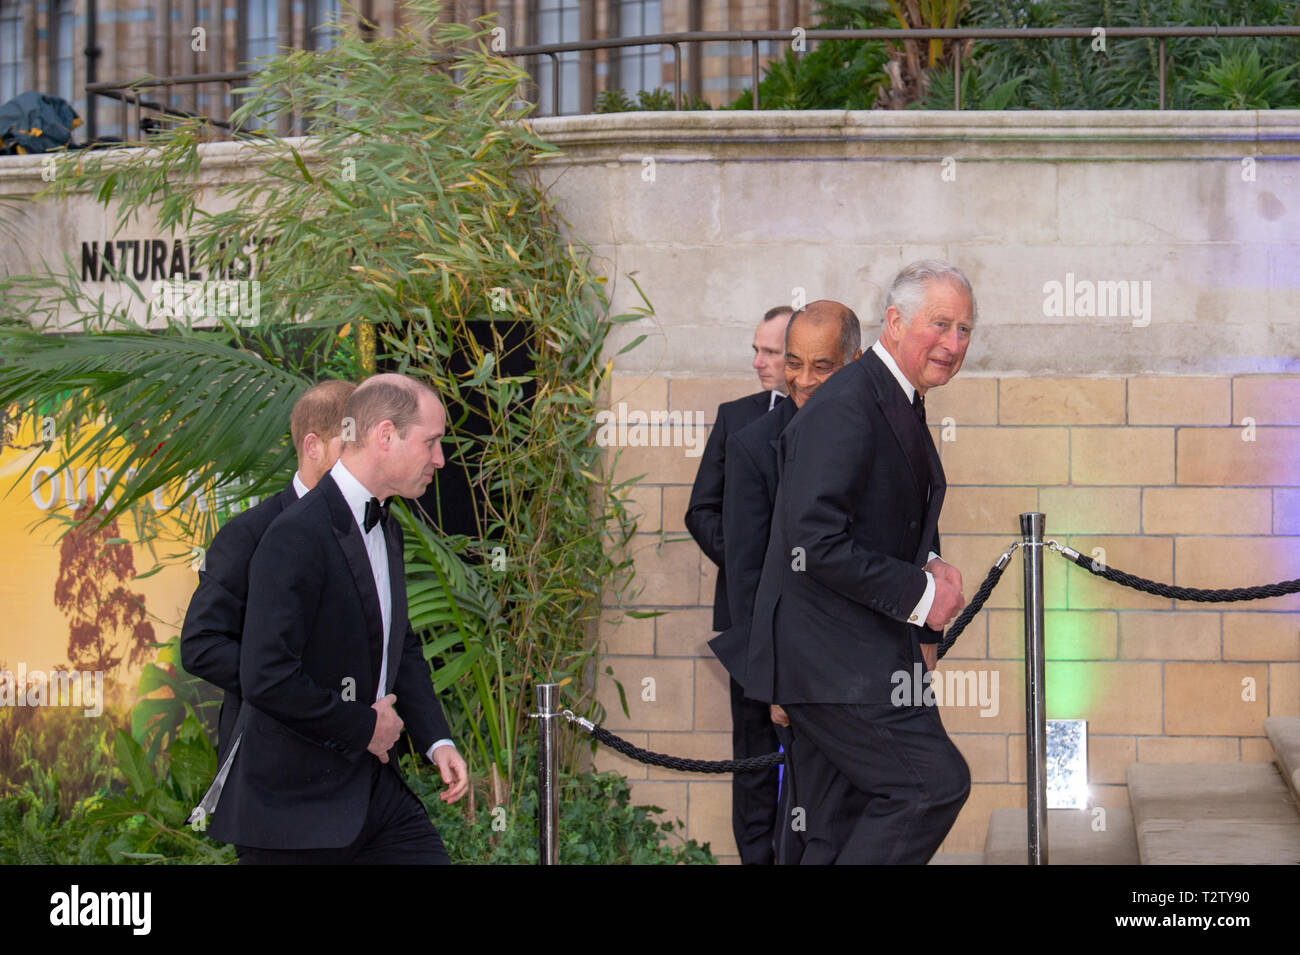 London, United Kingdom. 4 April 2019. Prince William, Prince Harry & Prince Charles arrive the global premiere of 'Our Planet' presented by Netflix. Credit: Peter Manning/Alamy Live News Stock Photo